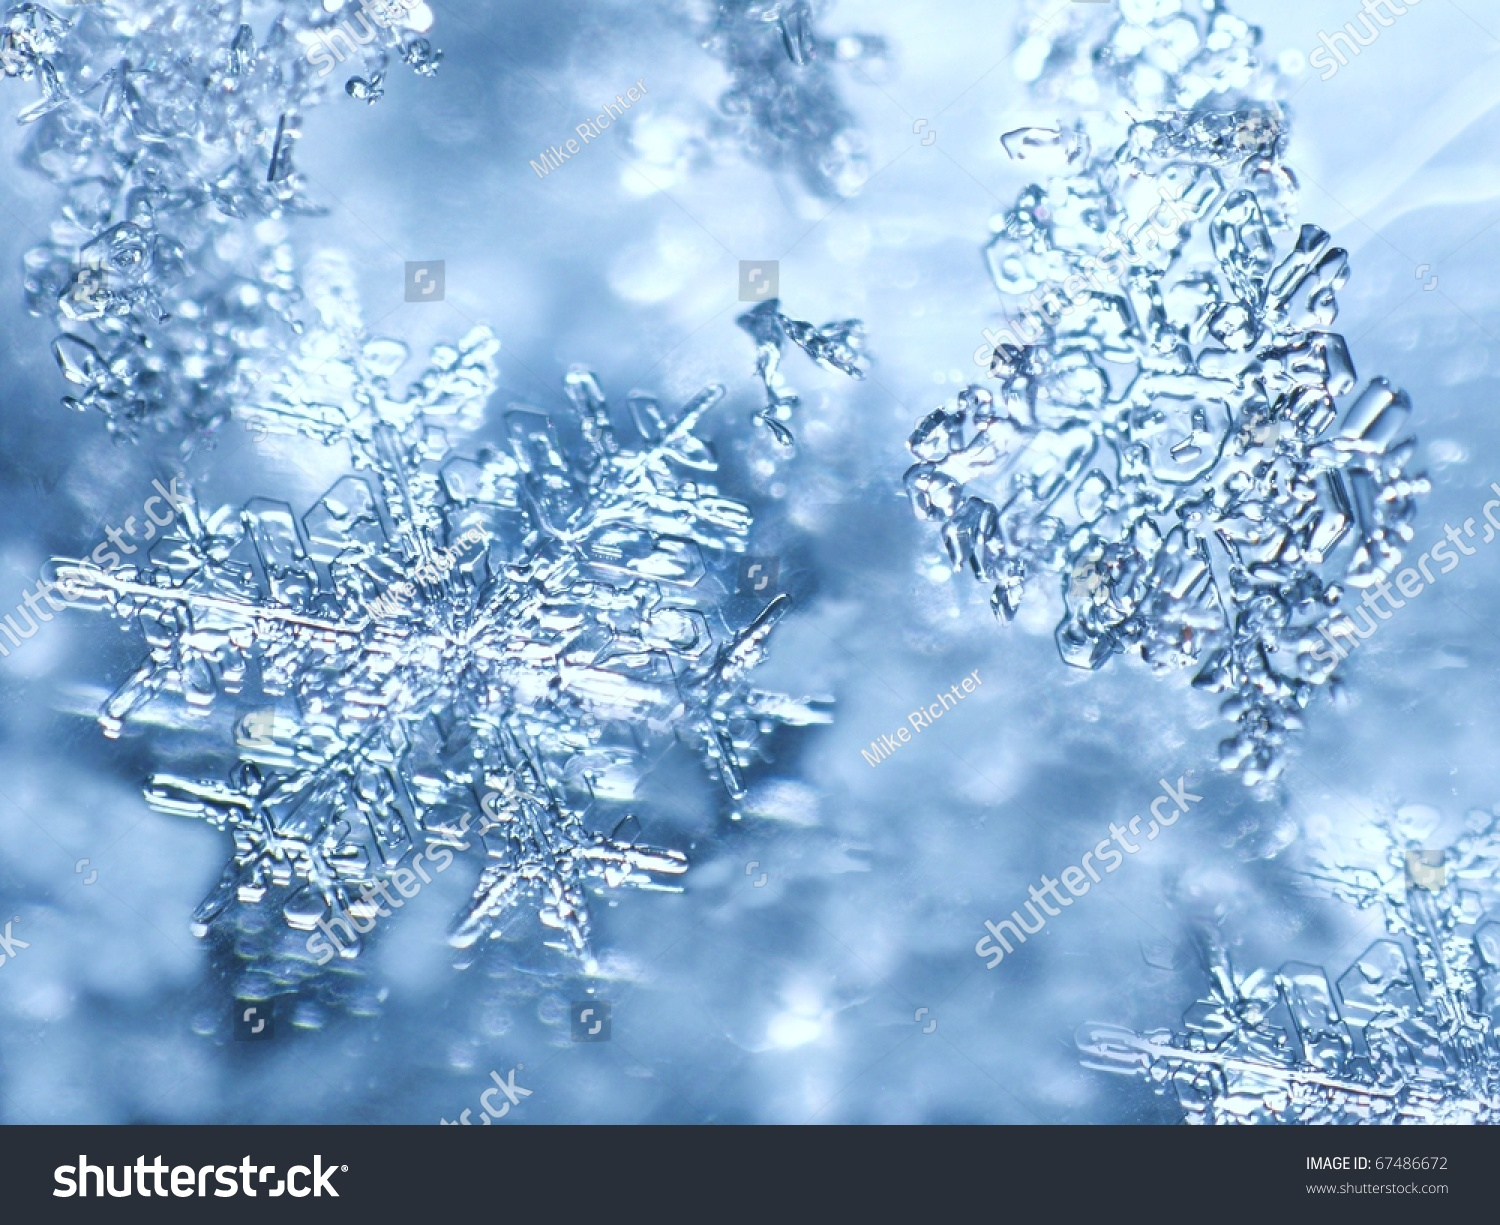 Snow Falling Wallpaper Download Real Snowflakes Stock Photo 67486672 Shutterstock